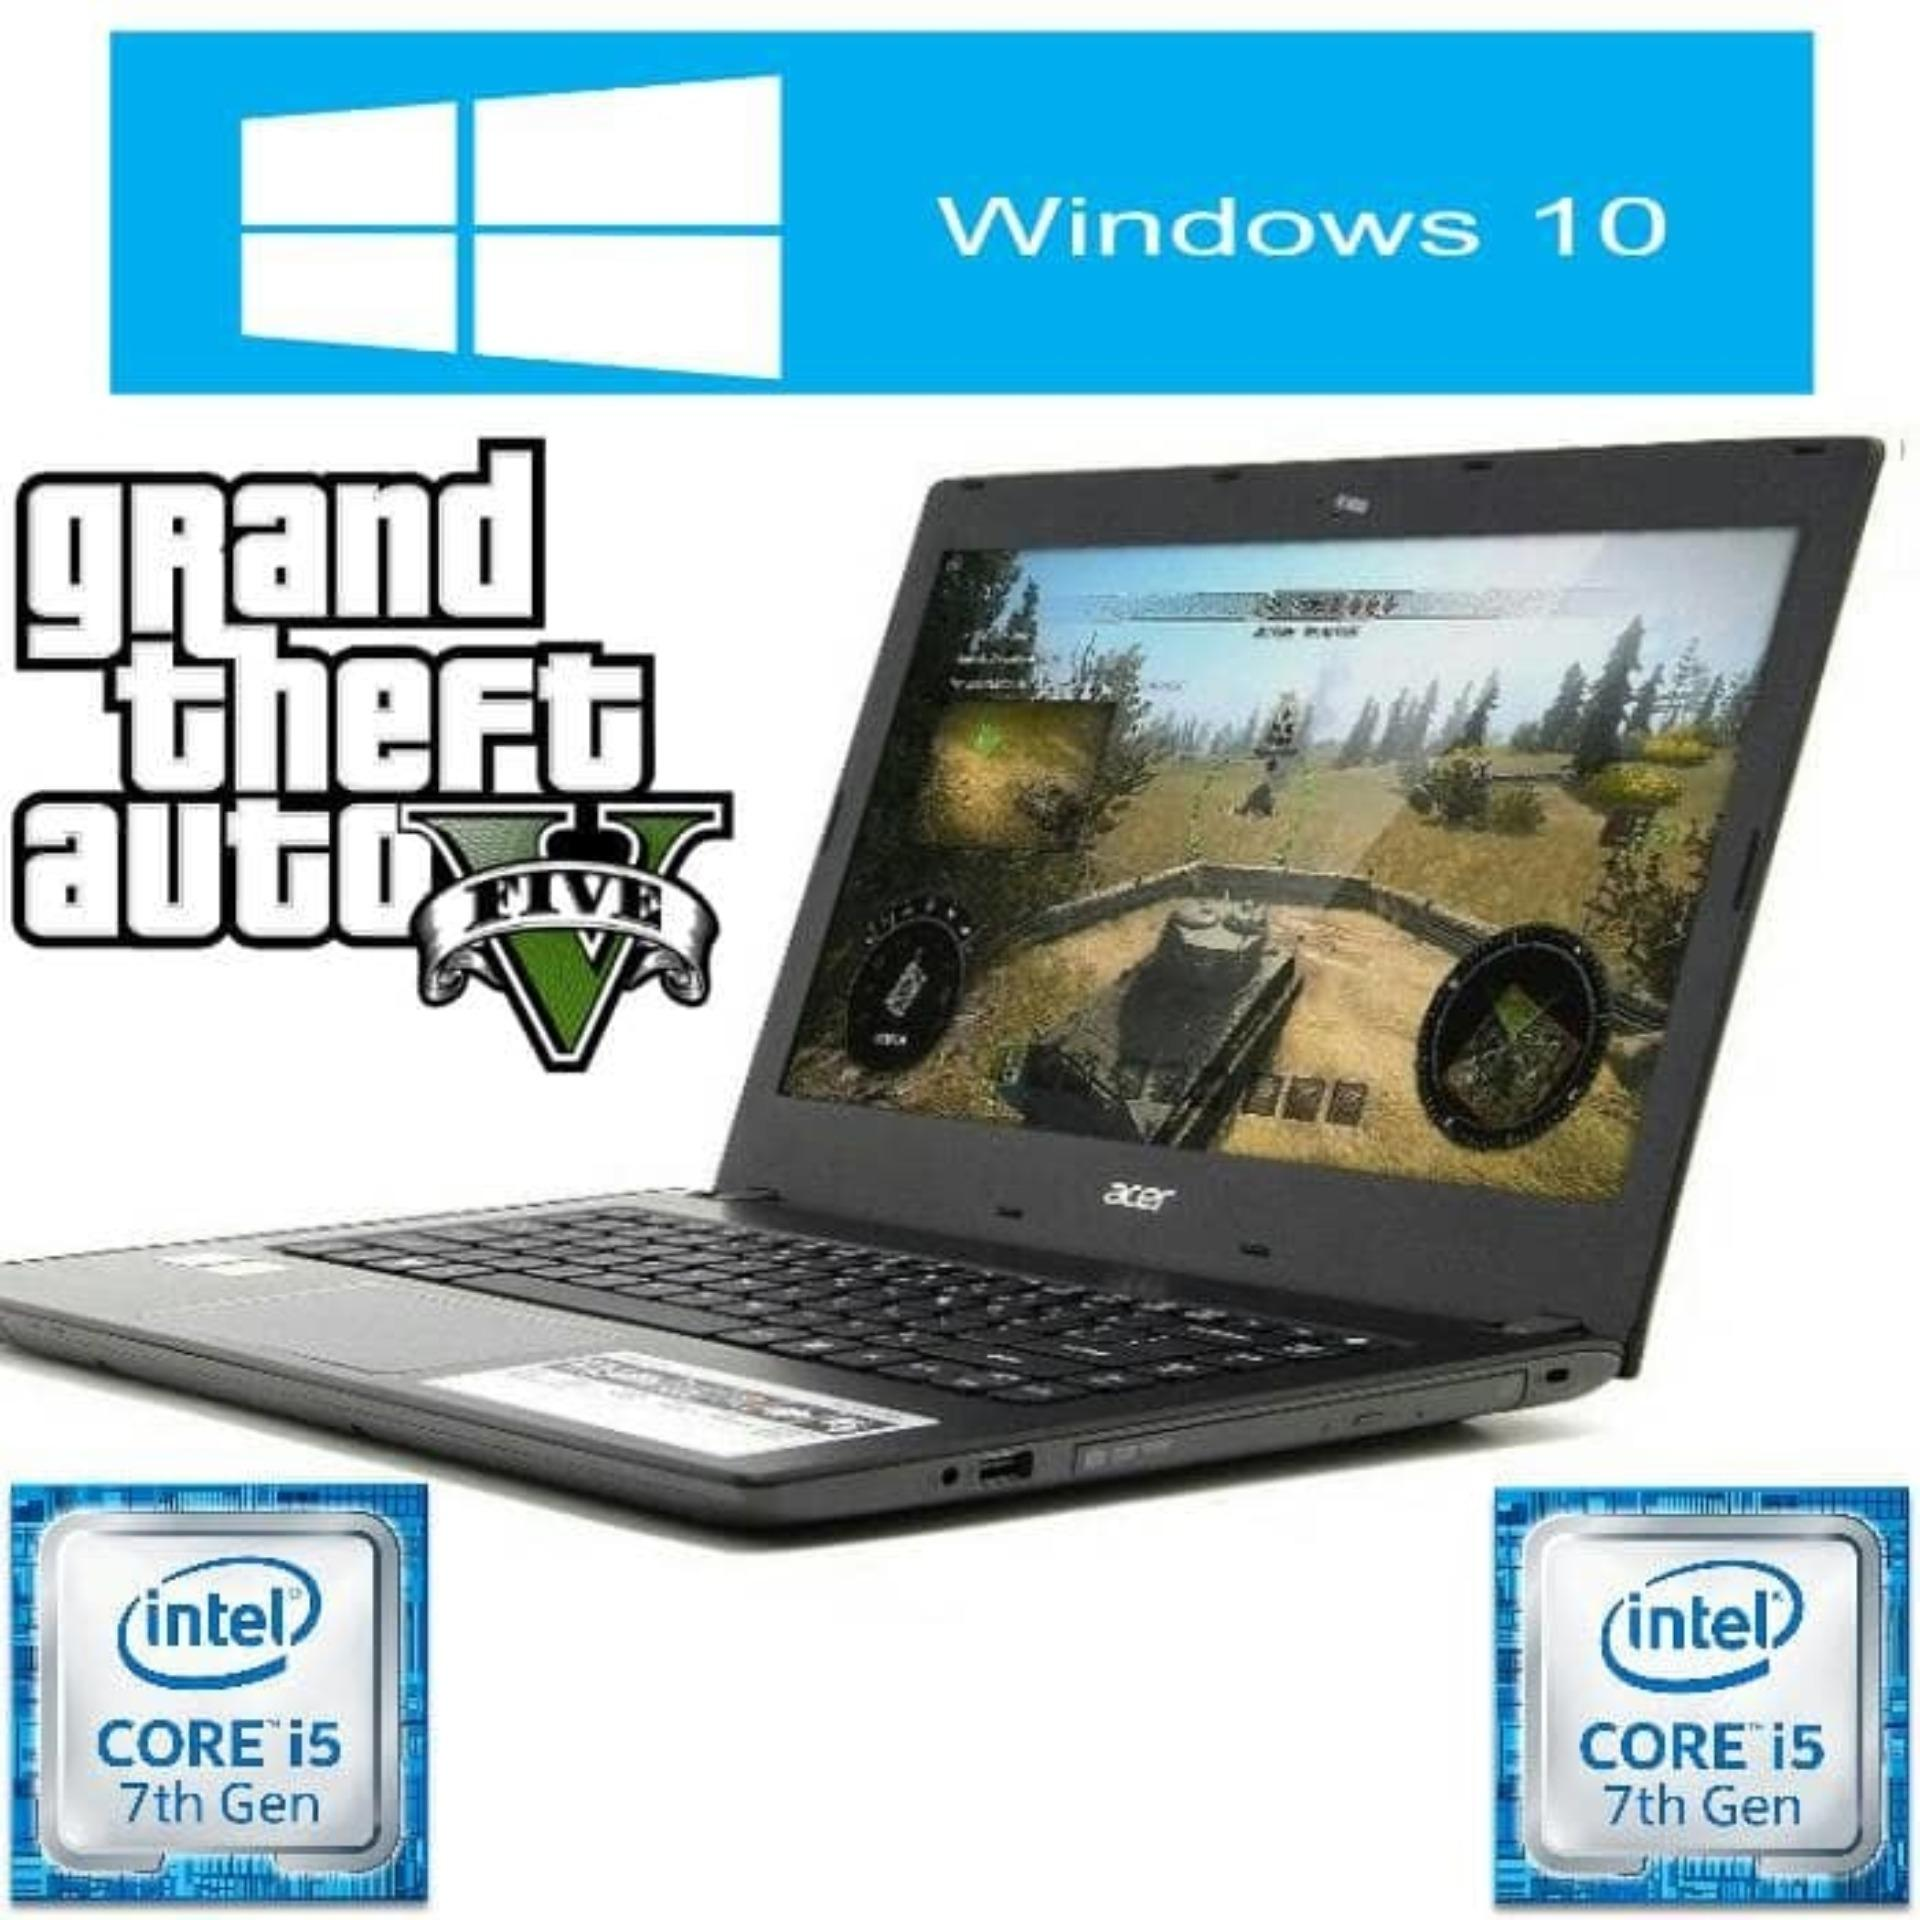 Acer Aspire E5-475G-55BD Laptop Game Windows 10 Processor I5-7200U (kabylake) RAM 4GB HDD 1TB vga 940MX 2GB DDR5 - Promo 2018